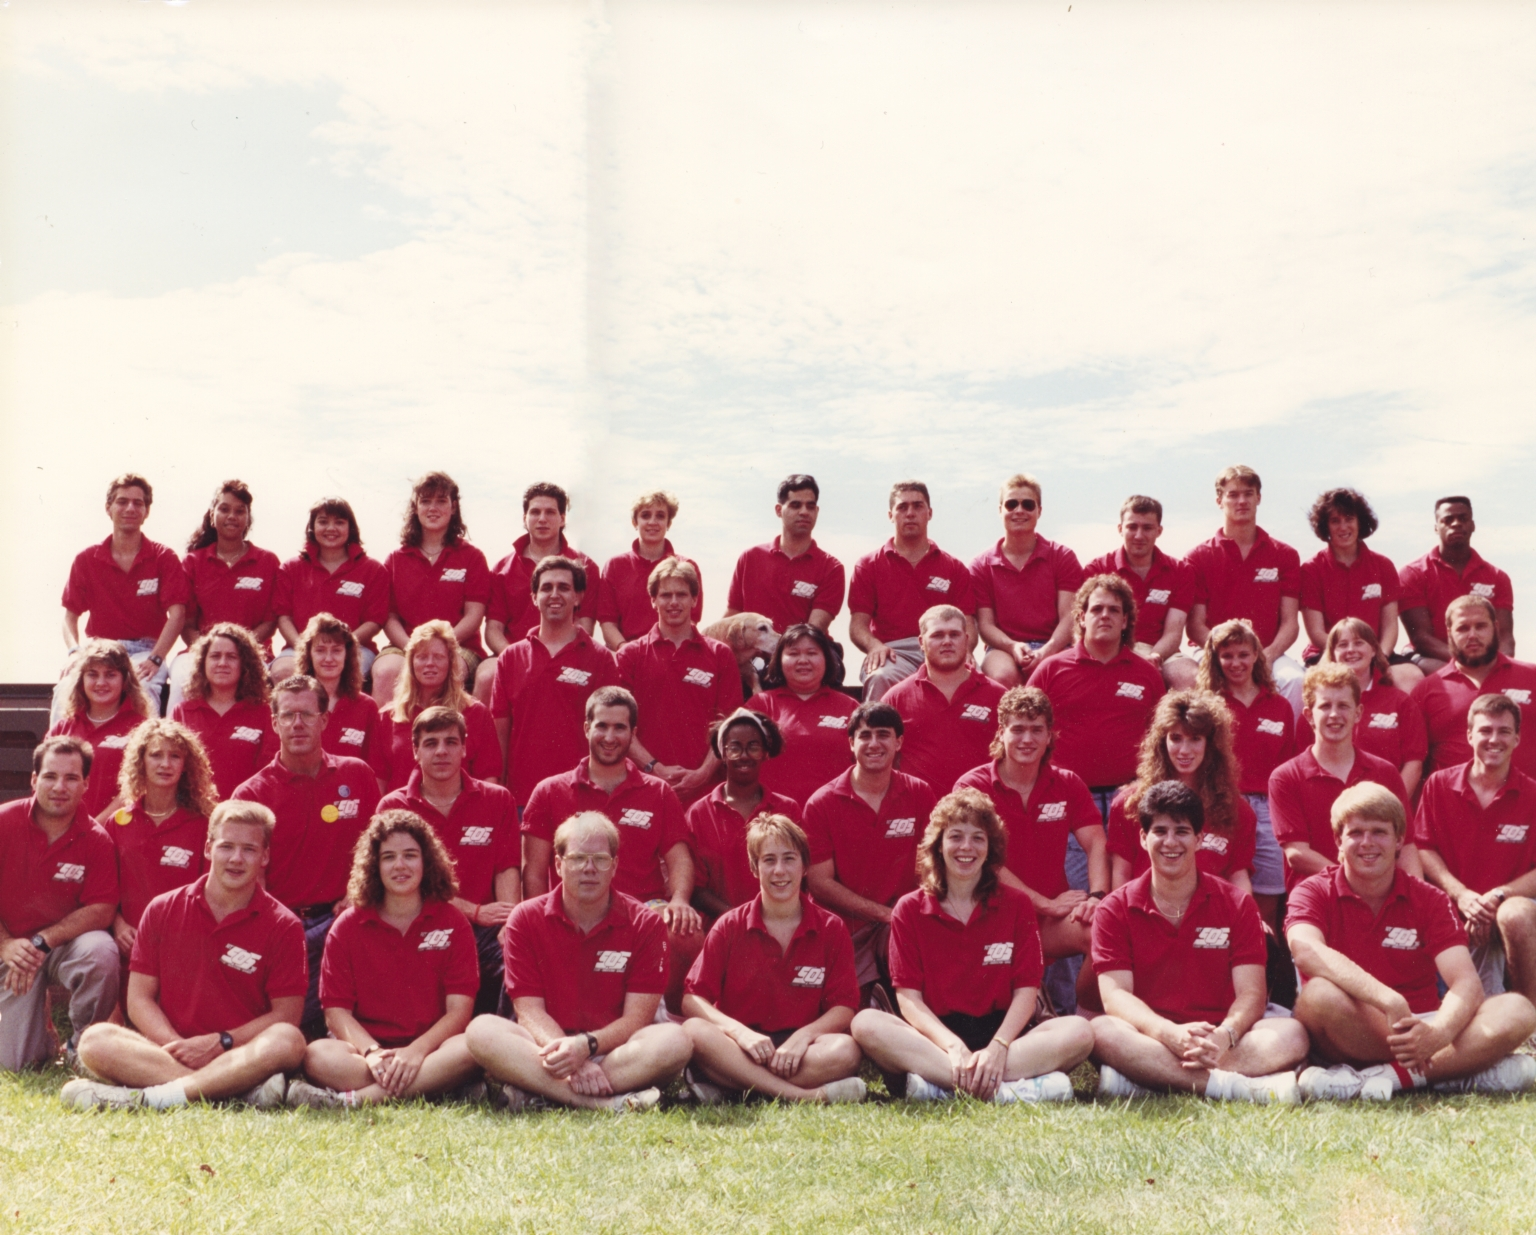 1990 Student Orientation Services Leaders